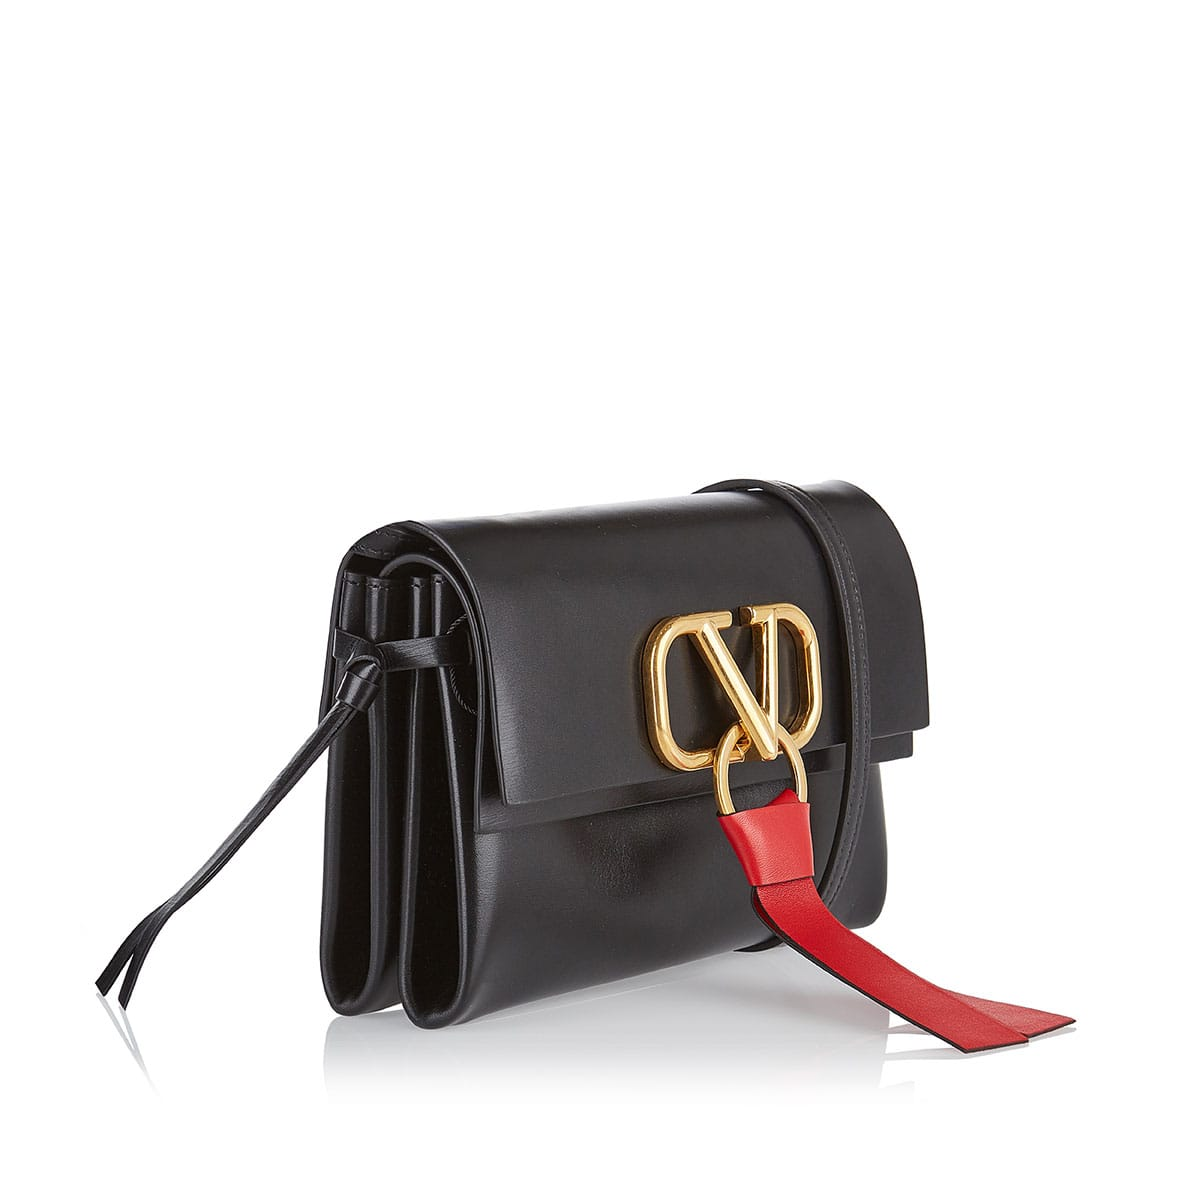 V-ring small leather crossbody bag